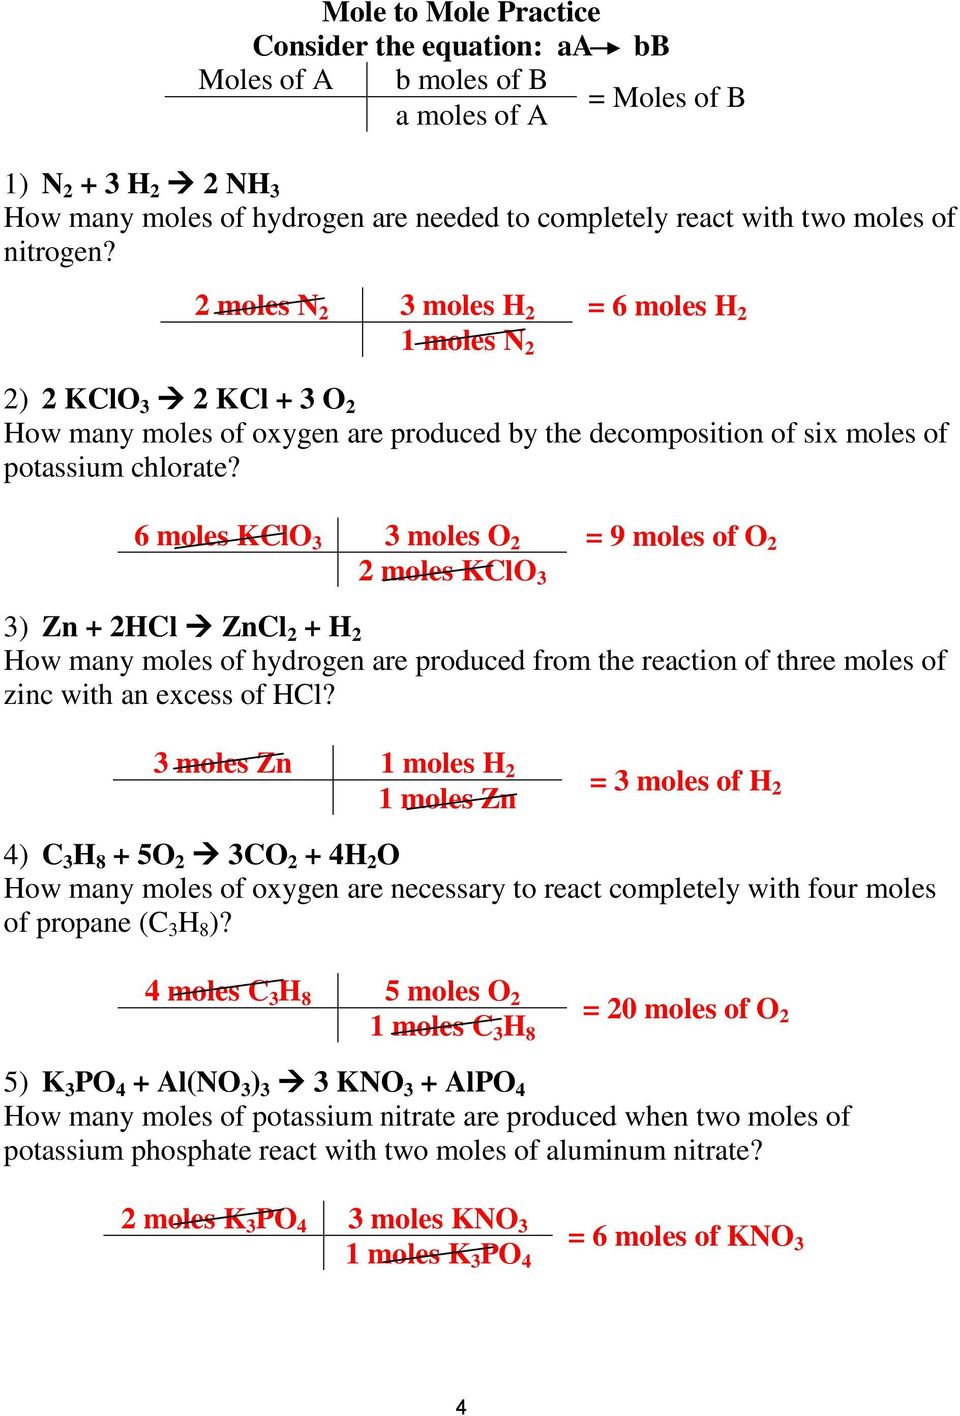 6 moles KClO 3 3 moles O 2 = 9 moles of O 2 2 moles KClO 3 3) Zn + 2HCl ZnCl 2 + H 2 How many moles of hydrogen are produced from the reaction of three moles of zinc with an excess of HCl?